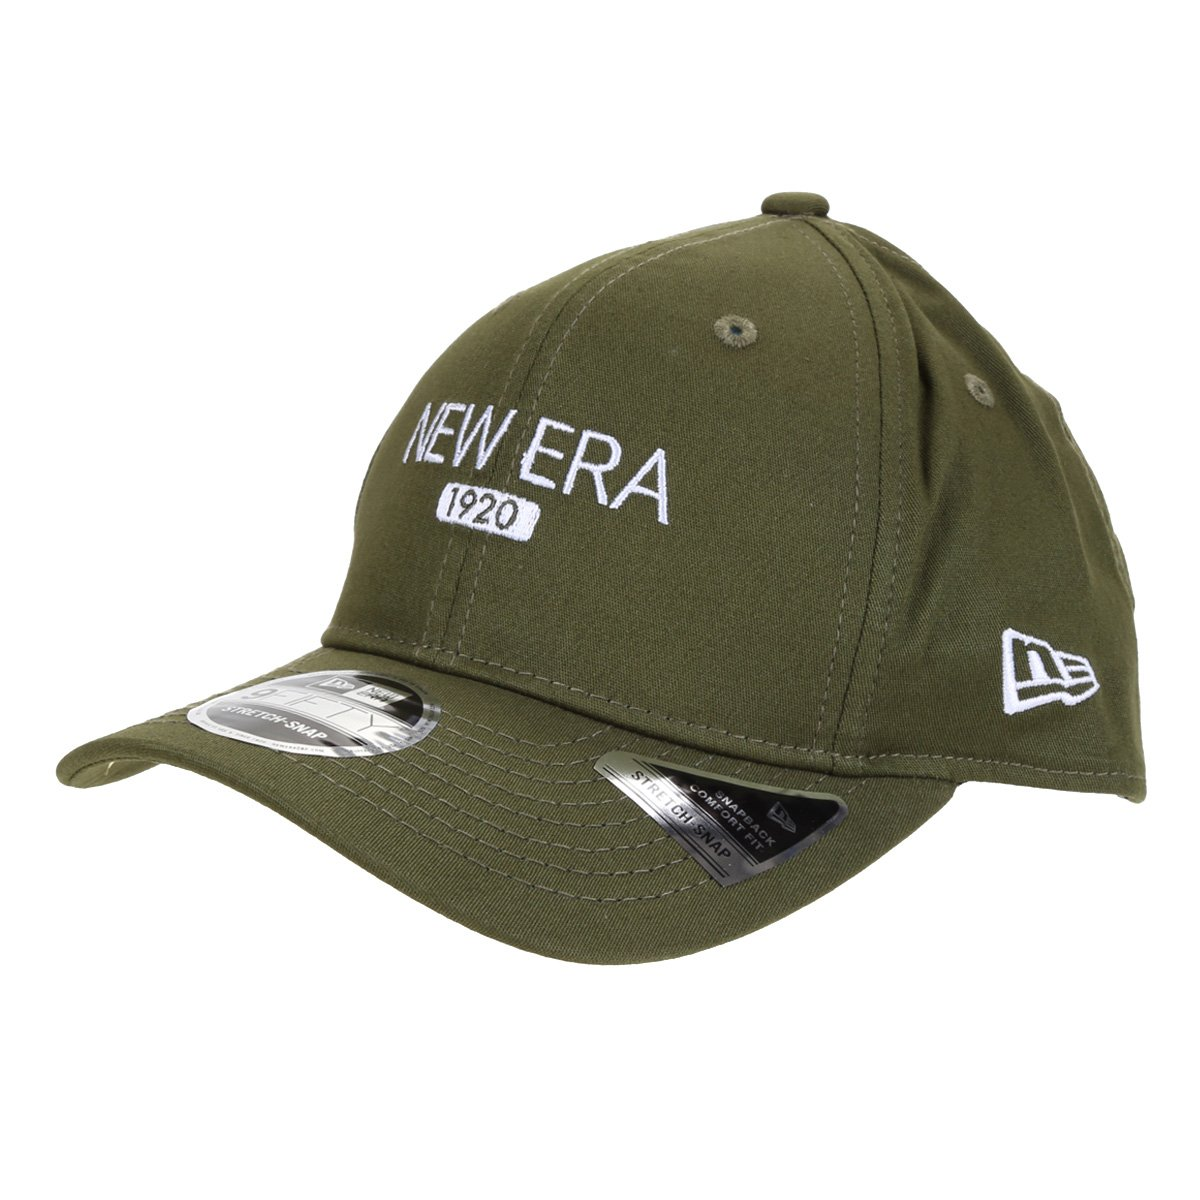 Boné New Era Aba Curva Snapback 950 Stretch Cotton Washable